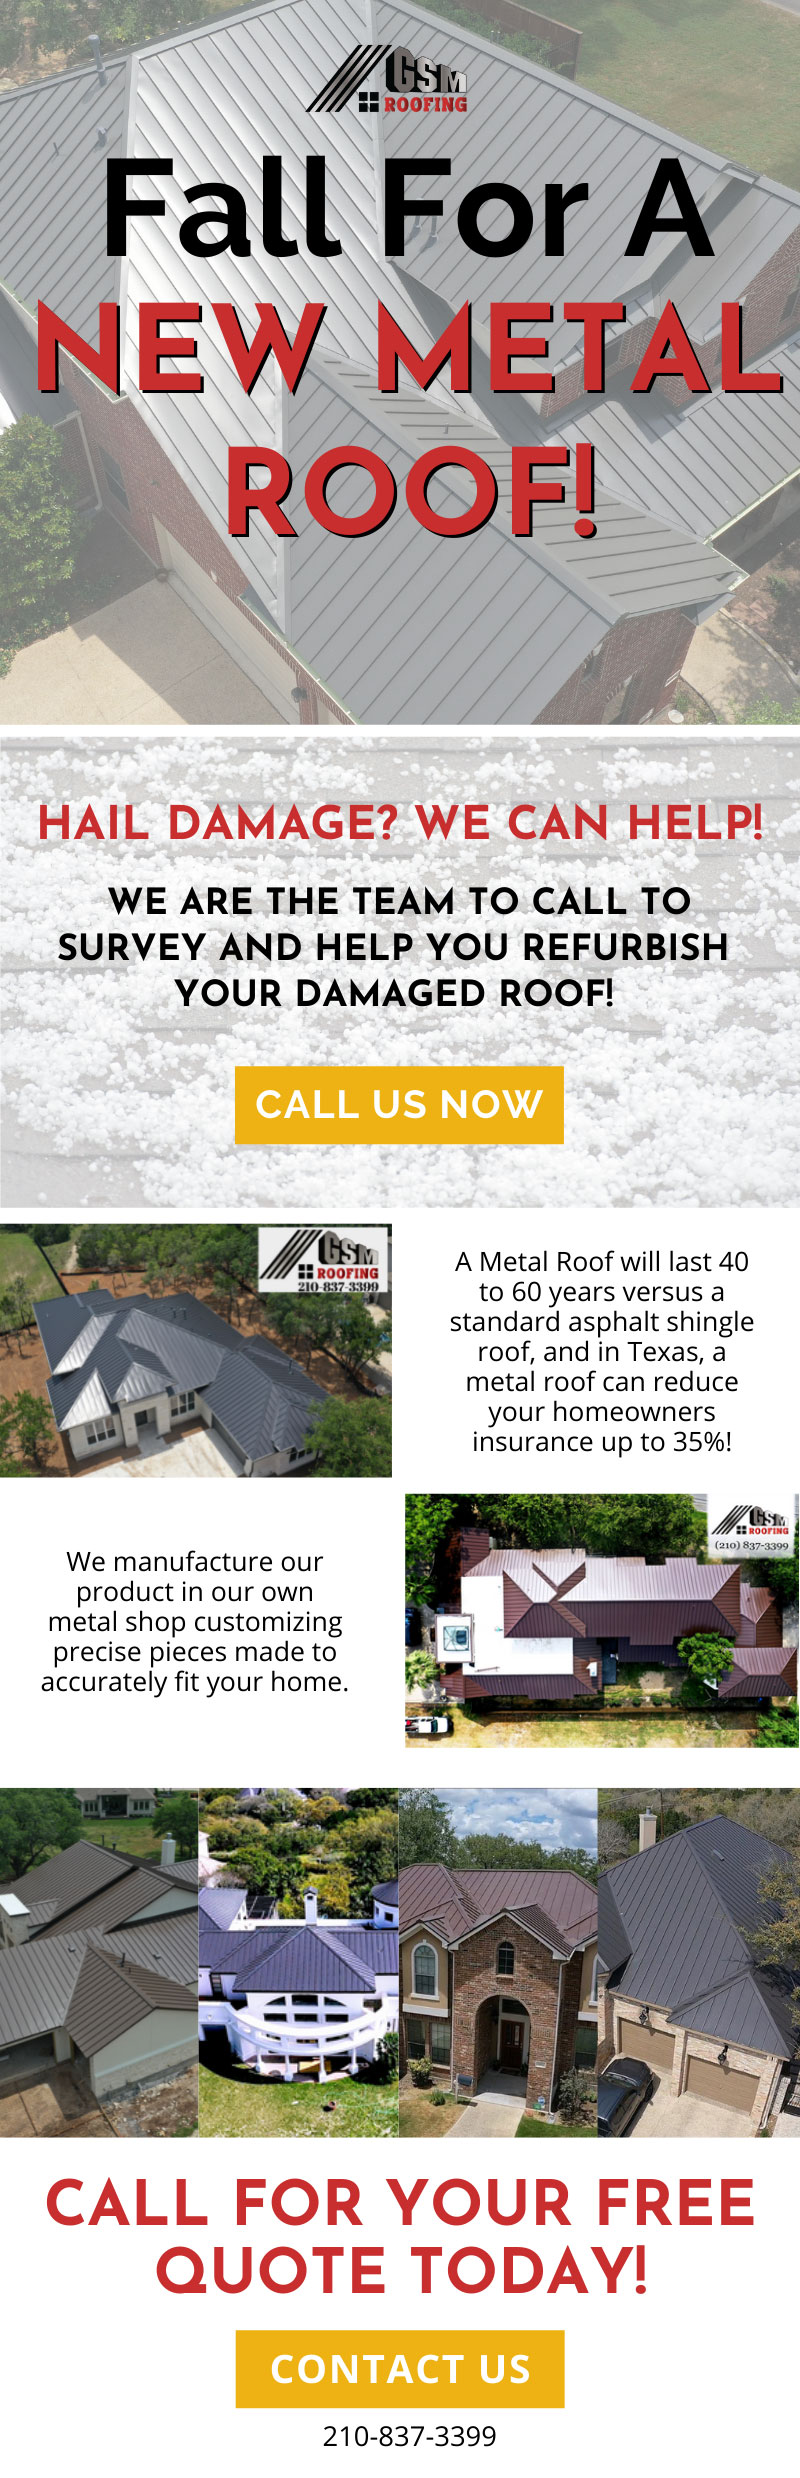 Fall for a New Metal Roof! 3